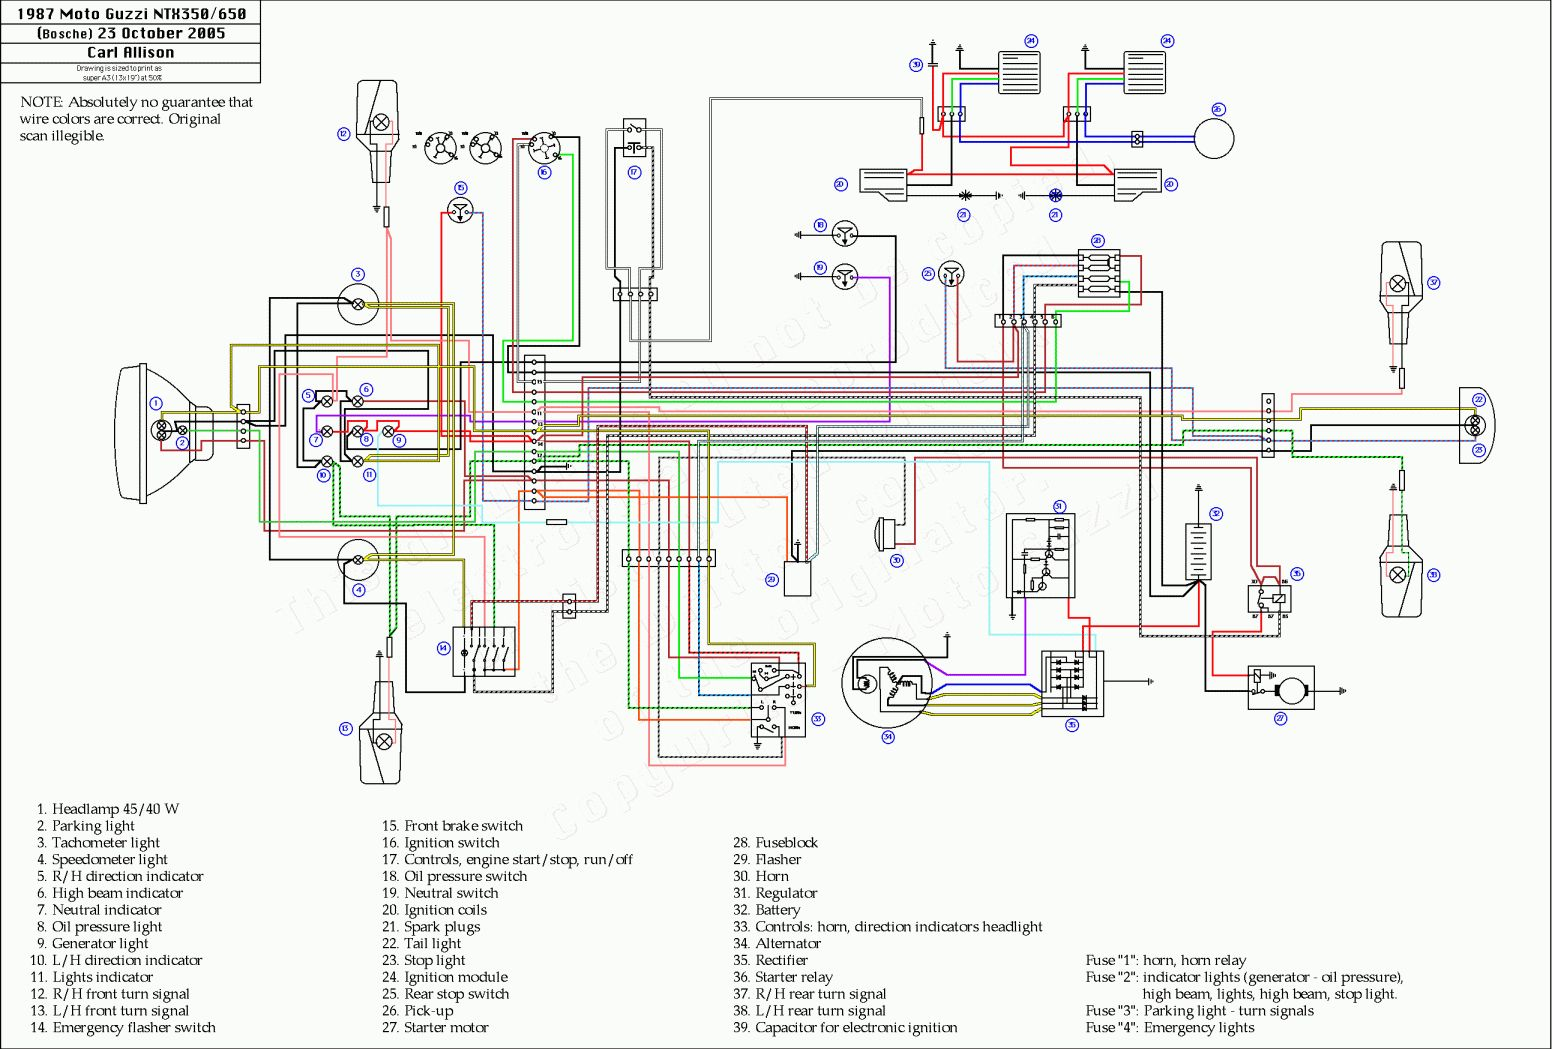 Yamaha Rs 100 Motorcycle Wiring Diagram And Moto Guzzi Wire Diagram Wiring Diagrams Motorcycle Wiring Electrical Wiring Diagram Electrical Diagram